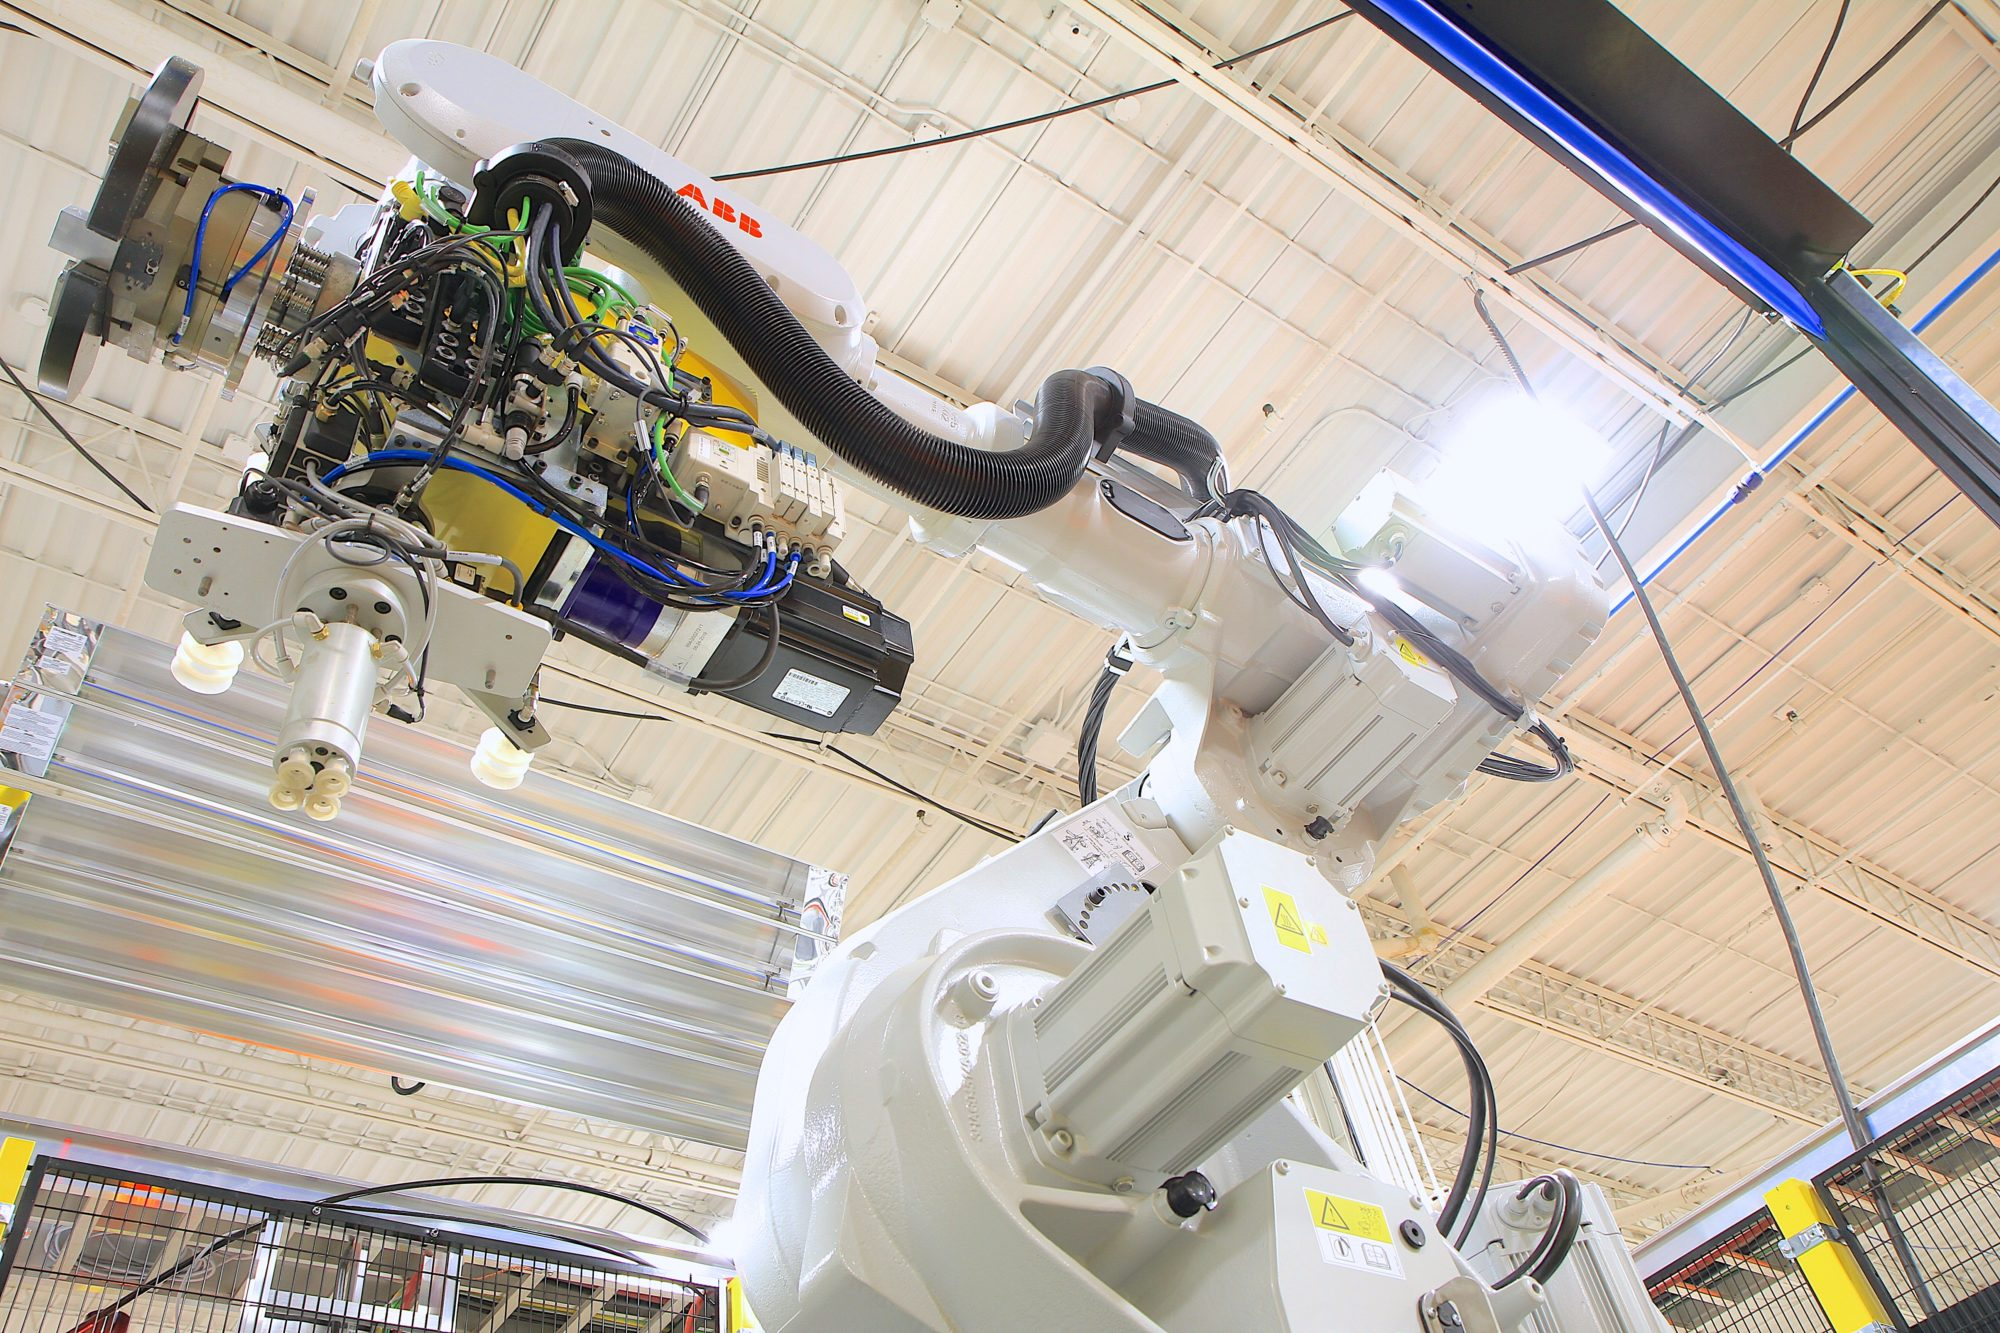 Thread & pipe automated robotic end of arm tool